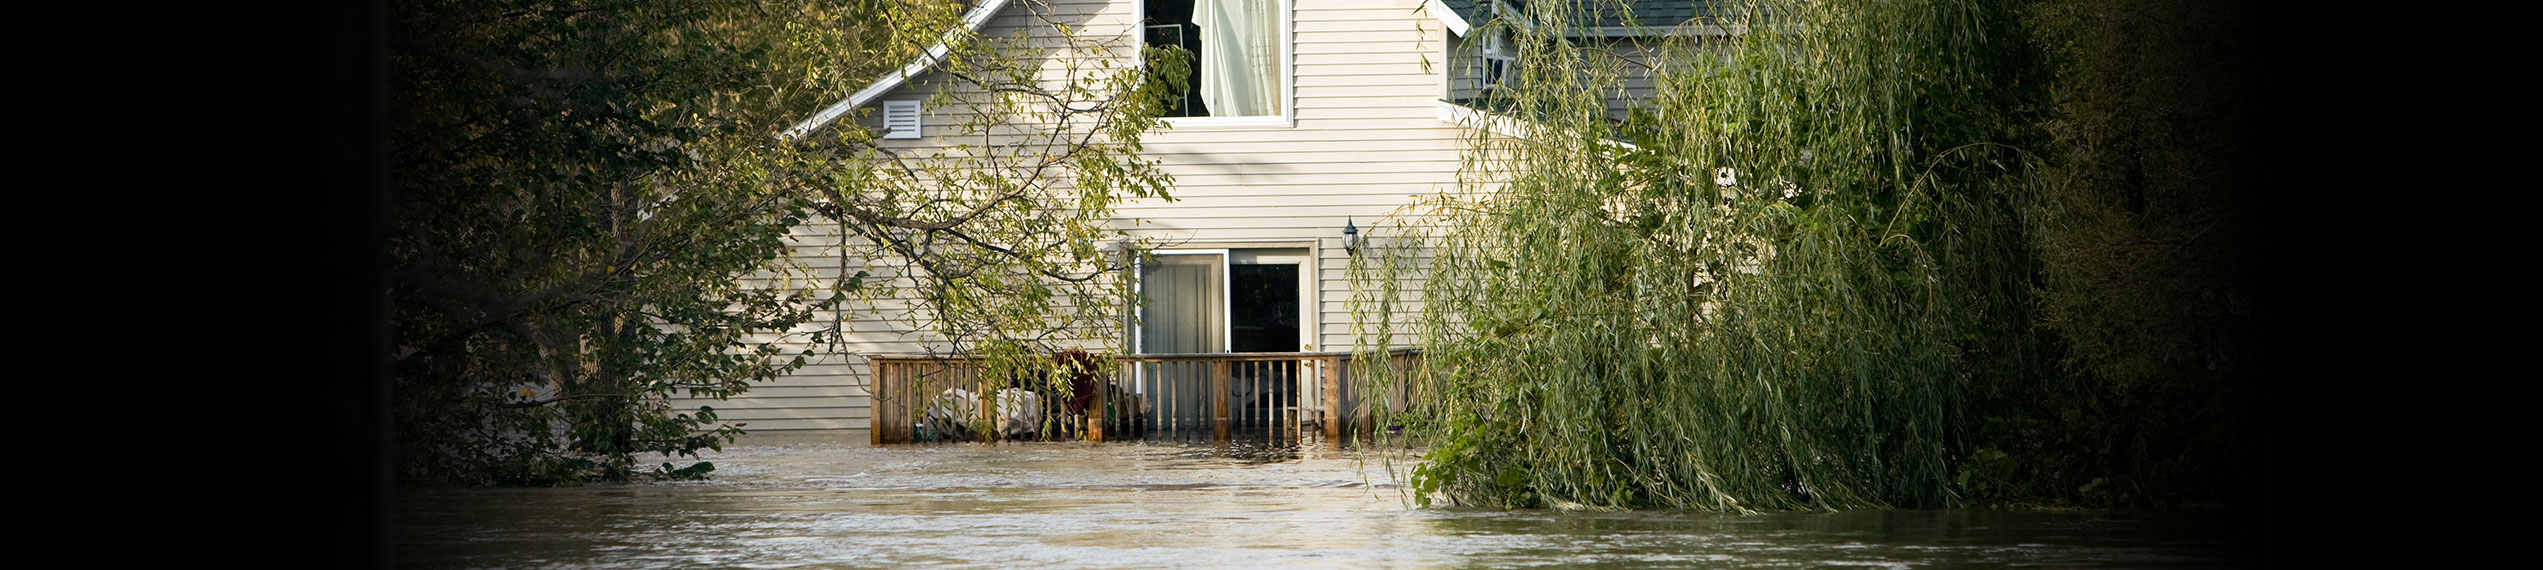 Water & Flood Damage Removal Services in Paul Davis Restoration of Suburban VA